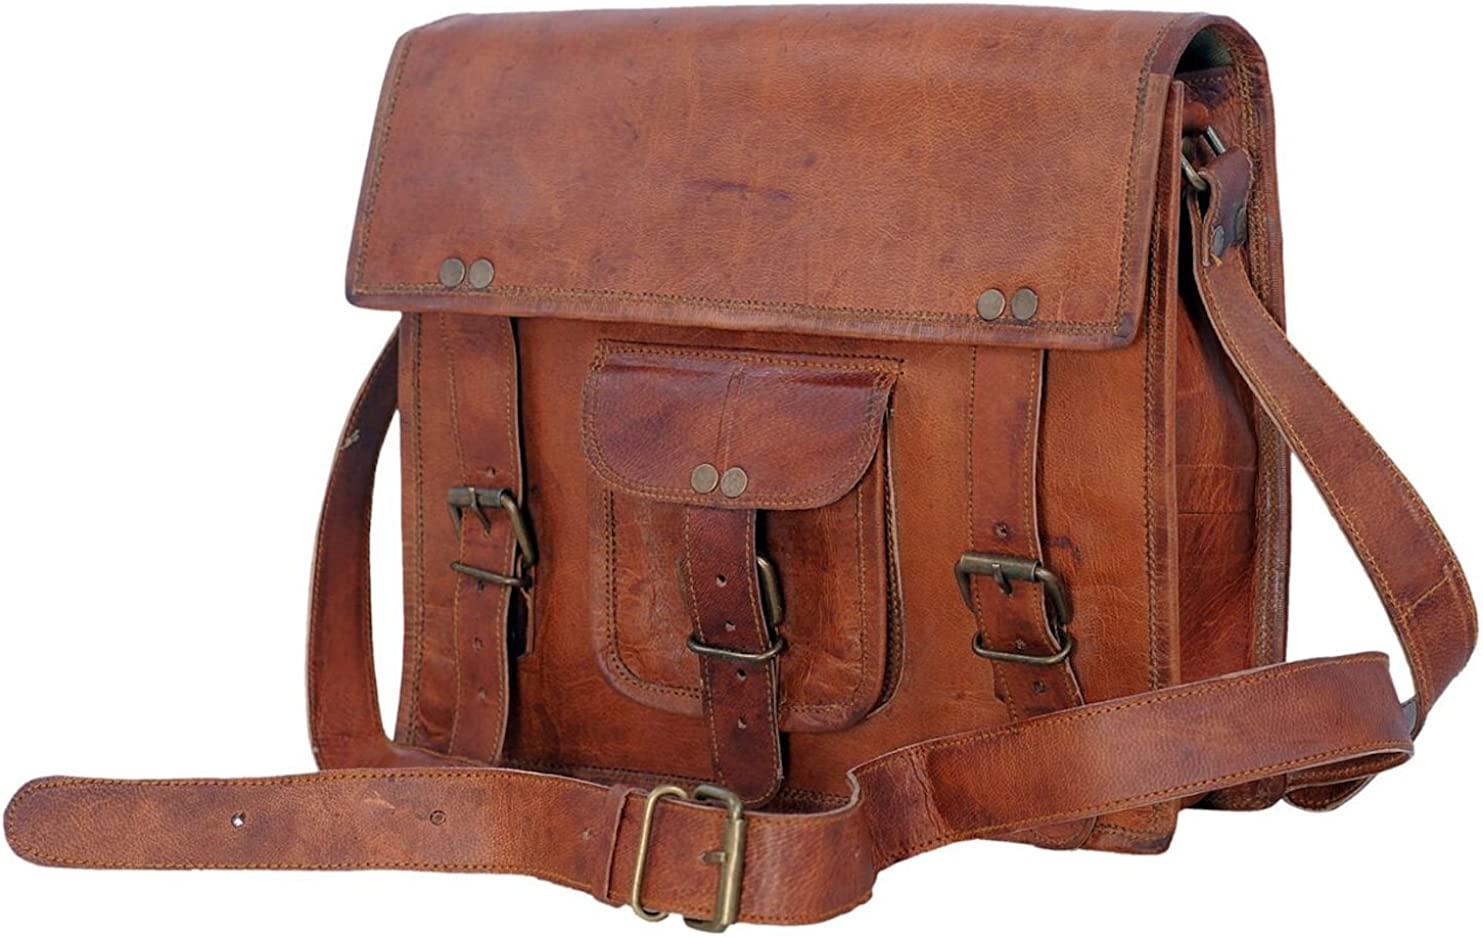 Komal's Passion Leather satchel Ipad Messenger Tablet Bag for men and women